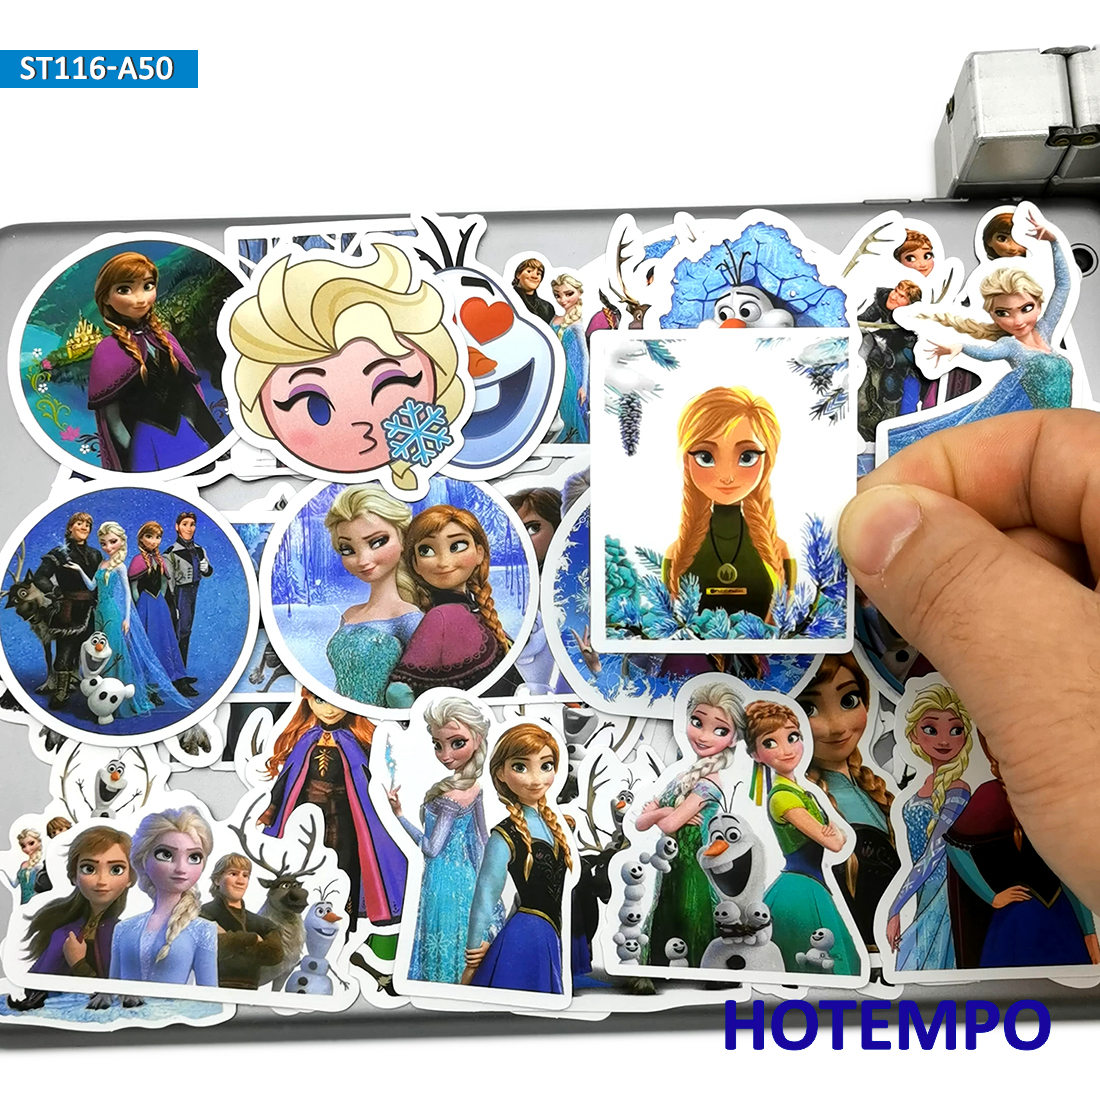 50pcs Cute Princess Elsa Anna Movie Anime Stickers Toys For Children Scrapbook Stationery Mobile Phone Laptop Suitcase Stickers